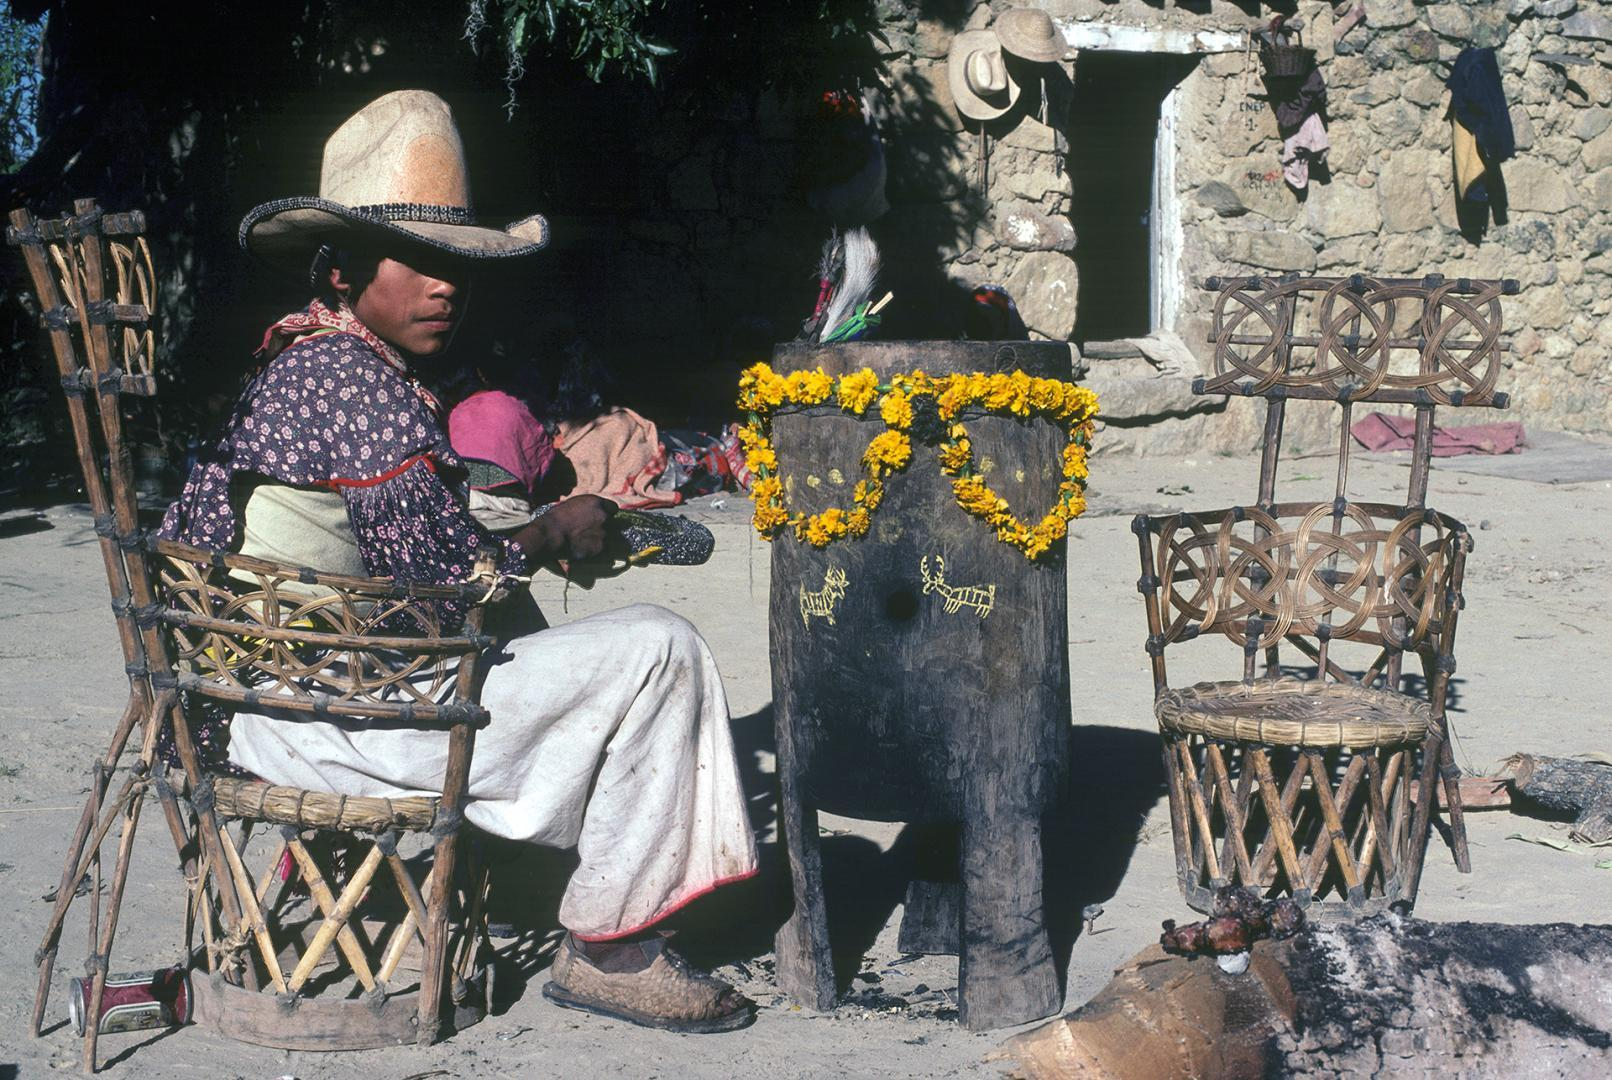 Ceremony of Tatei Neixa - Photograph ©Juan Negrín 1981 - 2018